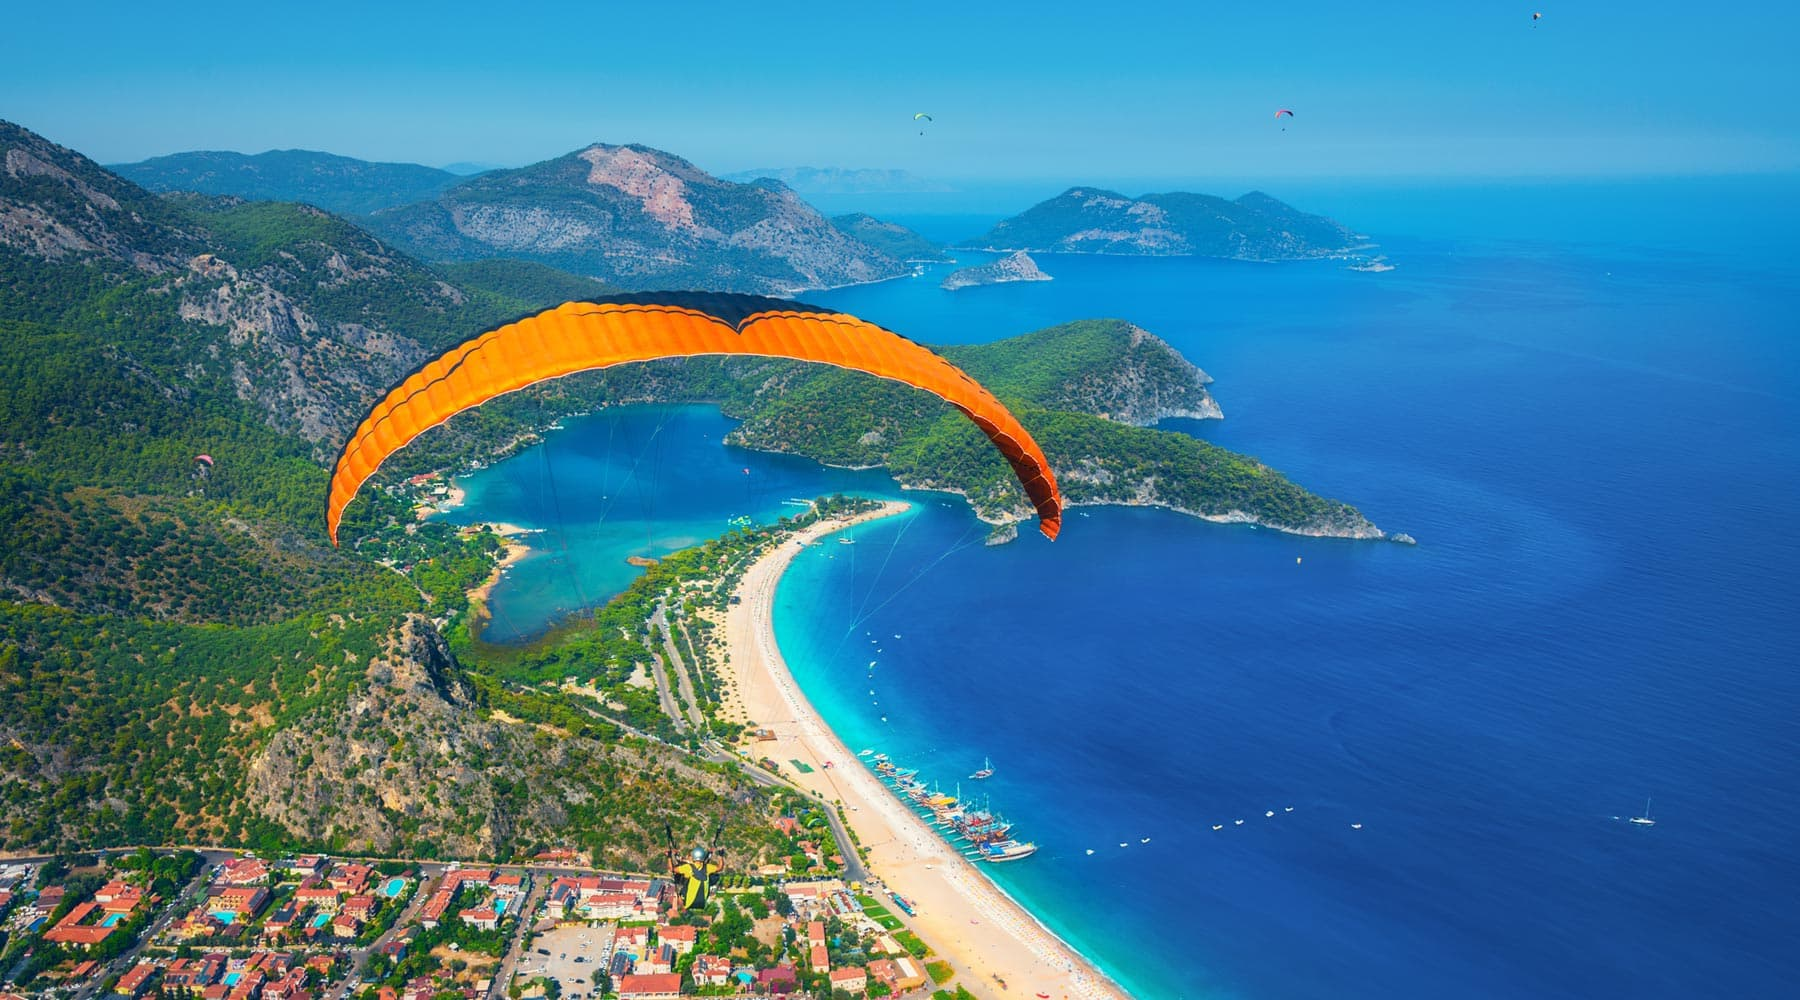 Oludeniz - One of the Most Remarkable Beach Resorts in Turkey 1